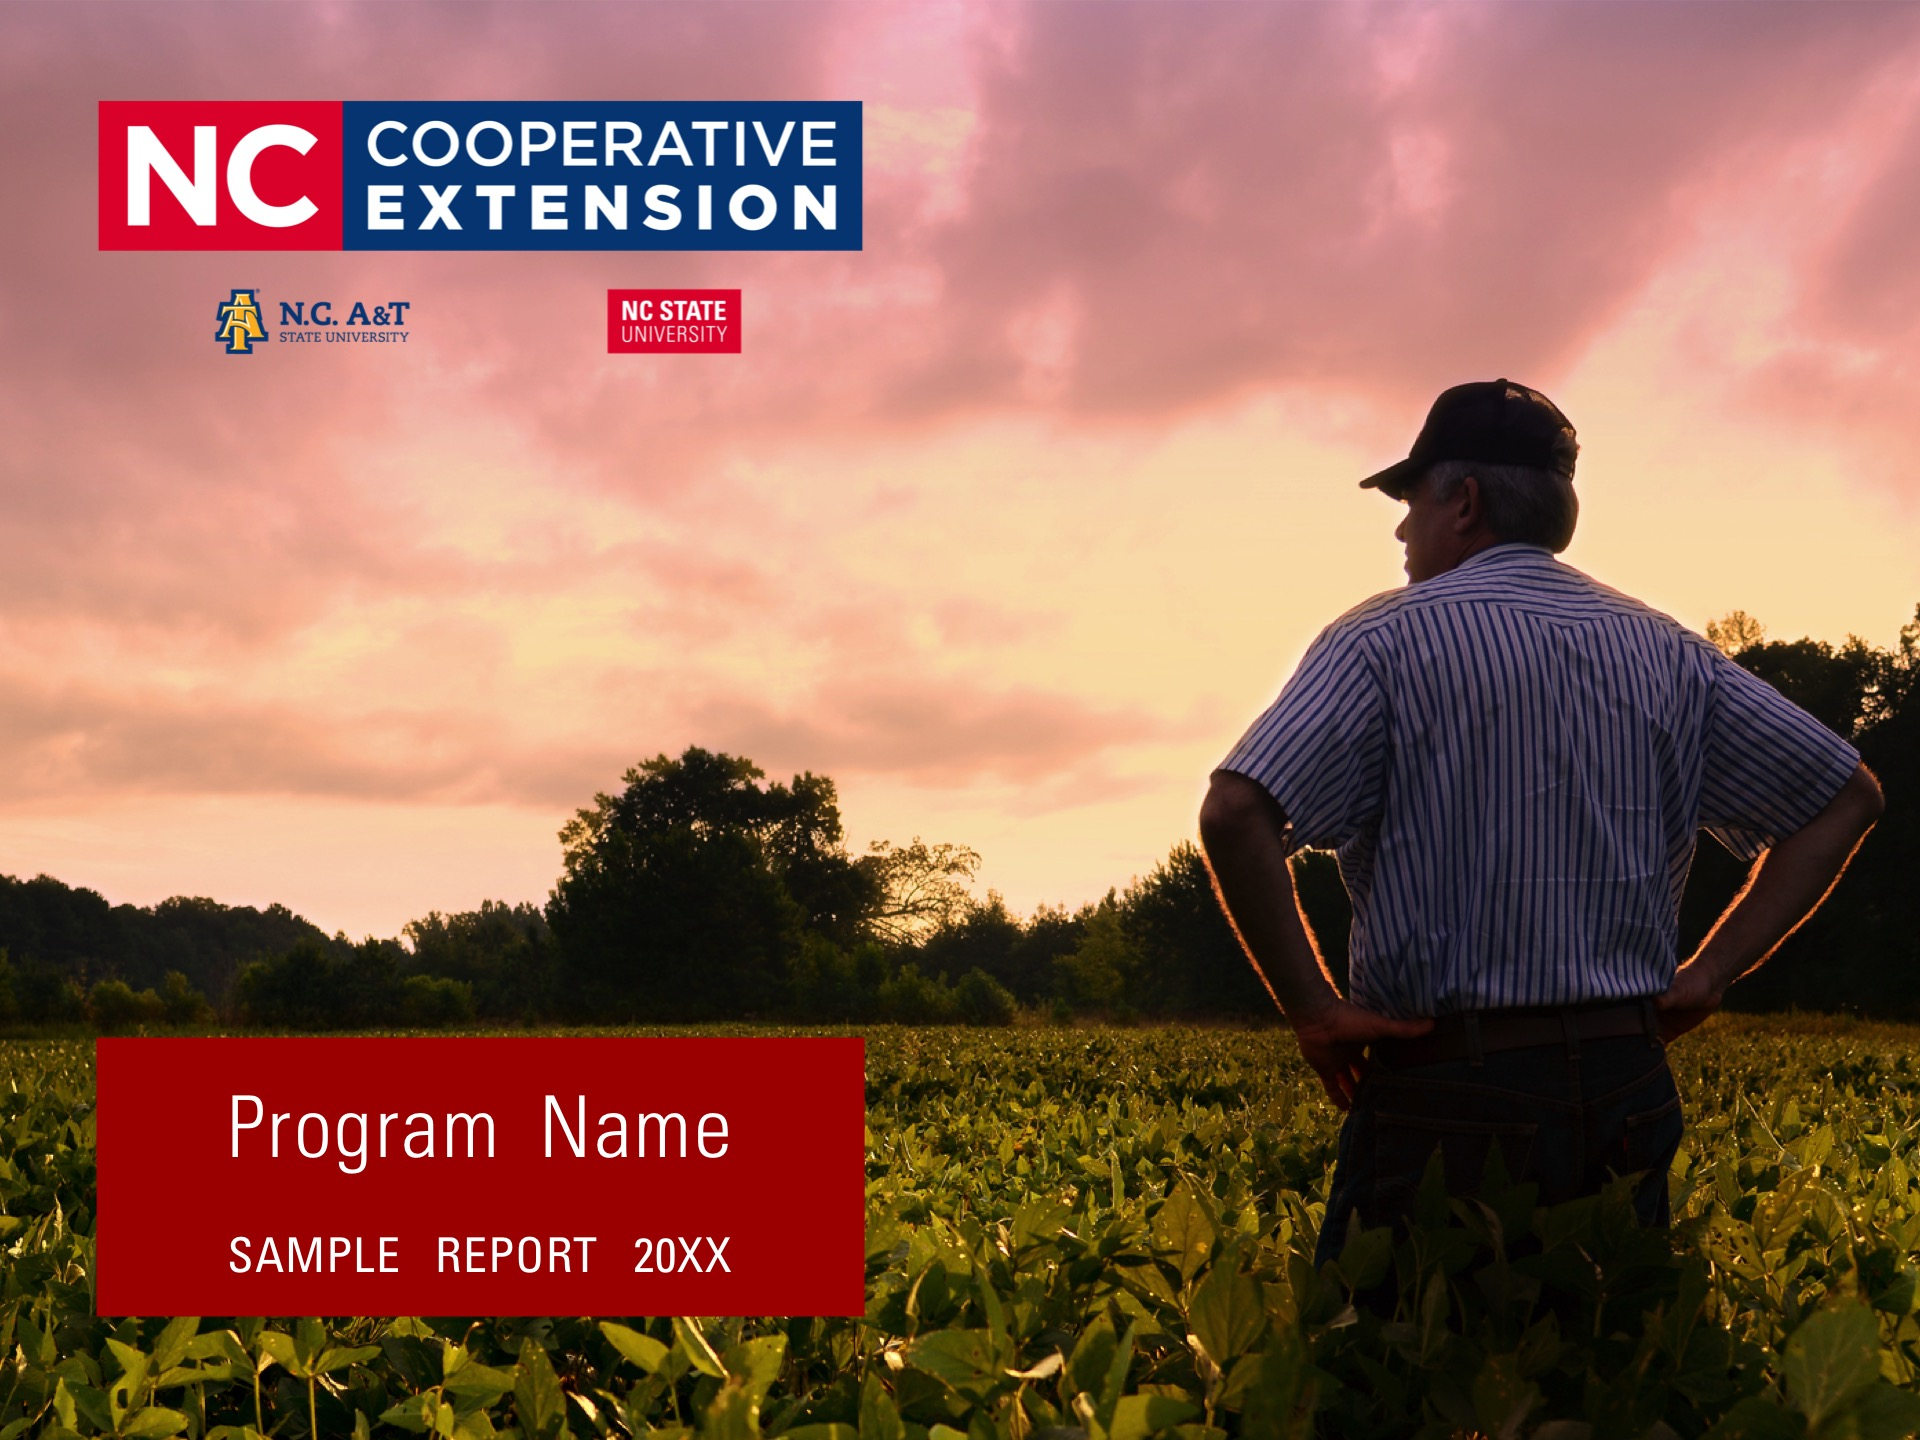 North Carolina Cooperative Extension program branding example for a report.